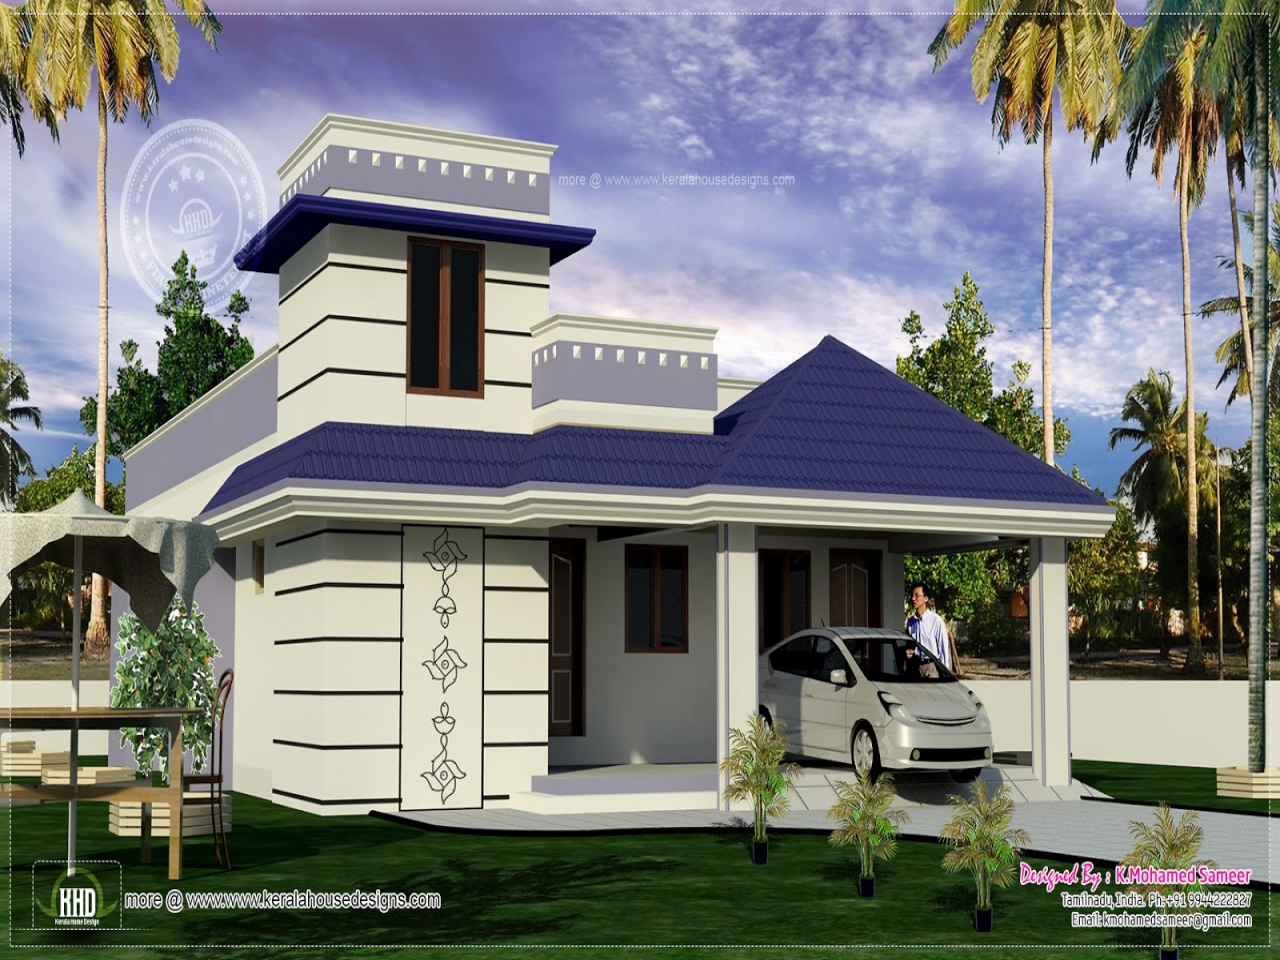 Ranch style house exterior designs single floor house for One floor house exterior design